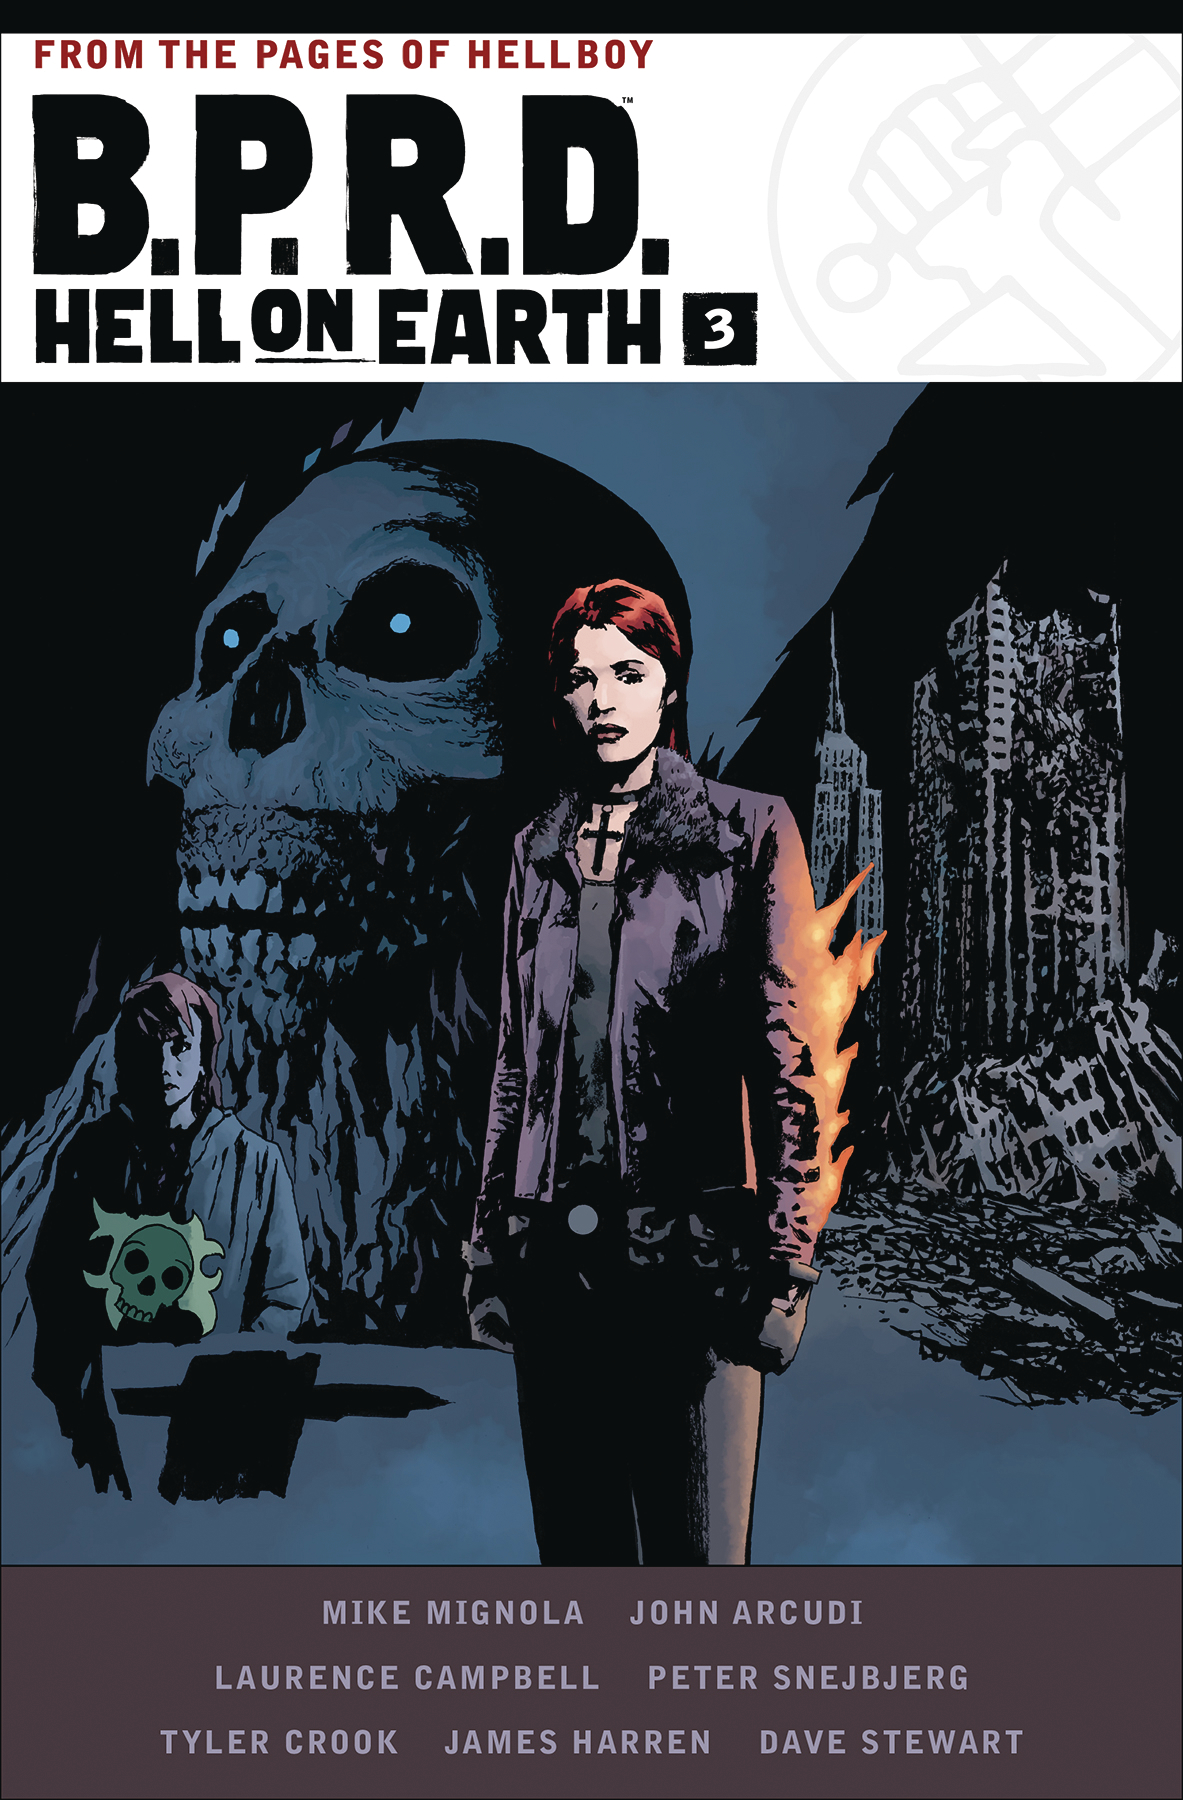 BPRD HELL ON EARTH HC VOL 03